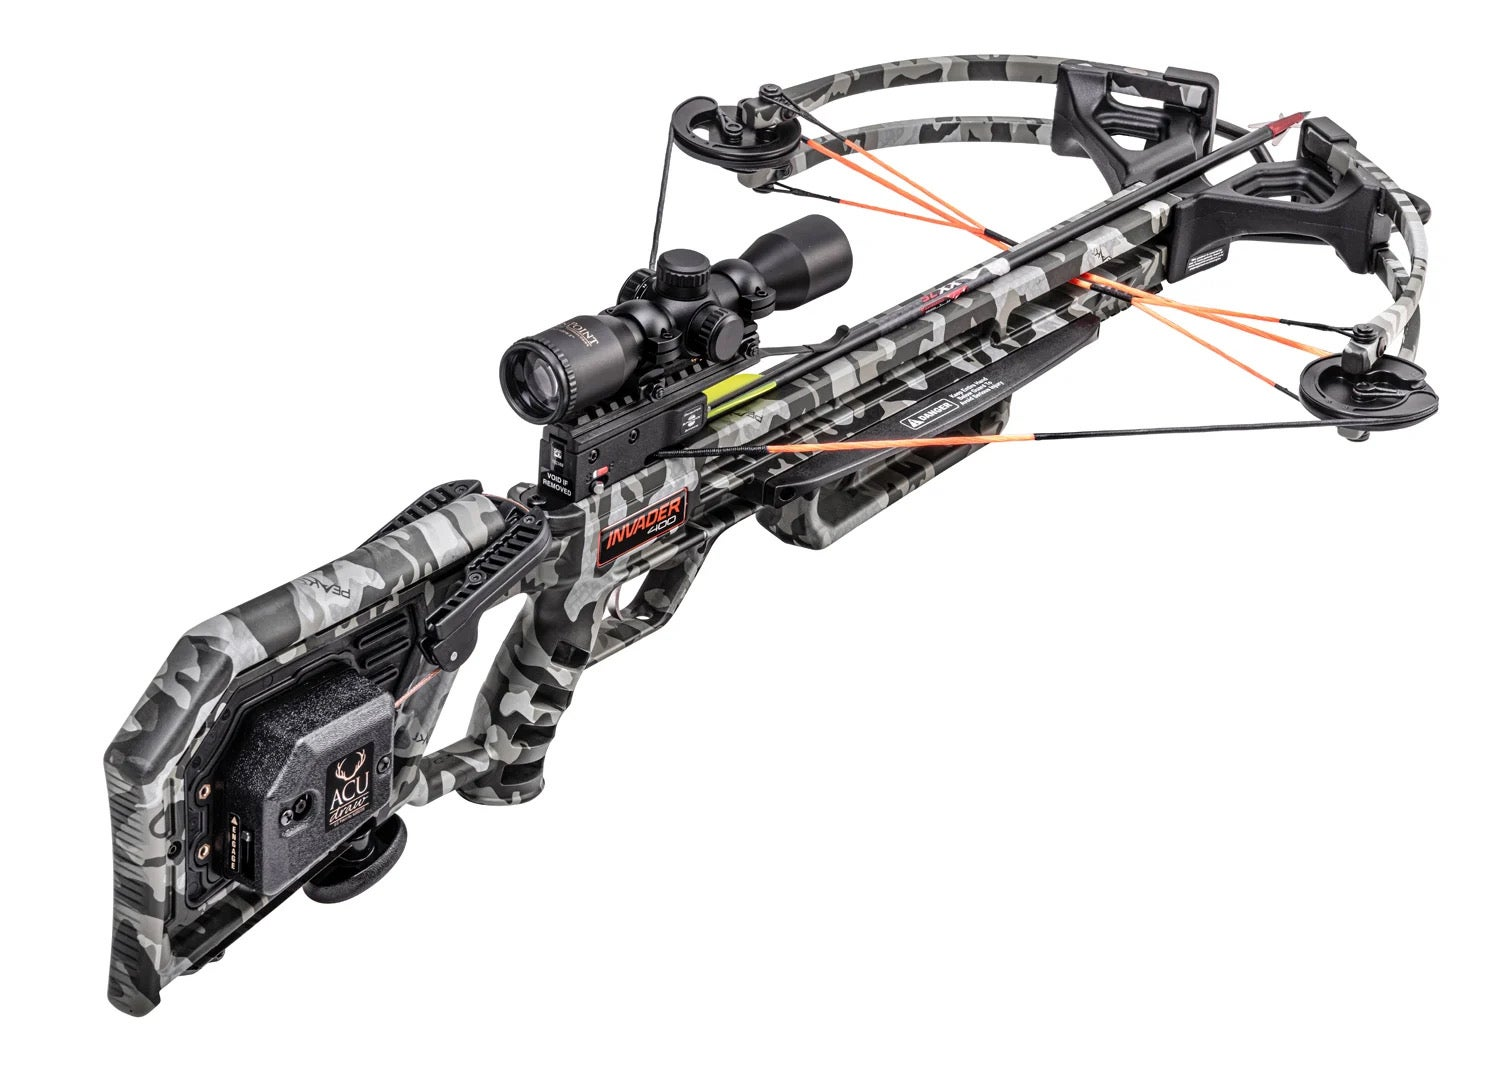 Wicked Ridge Invader 400 best crossbow for the money.